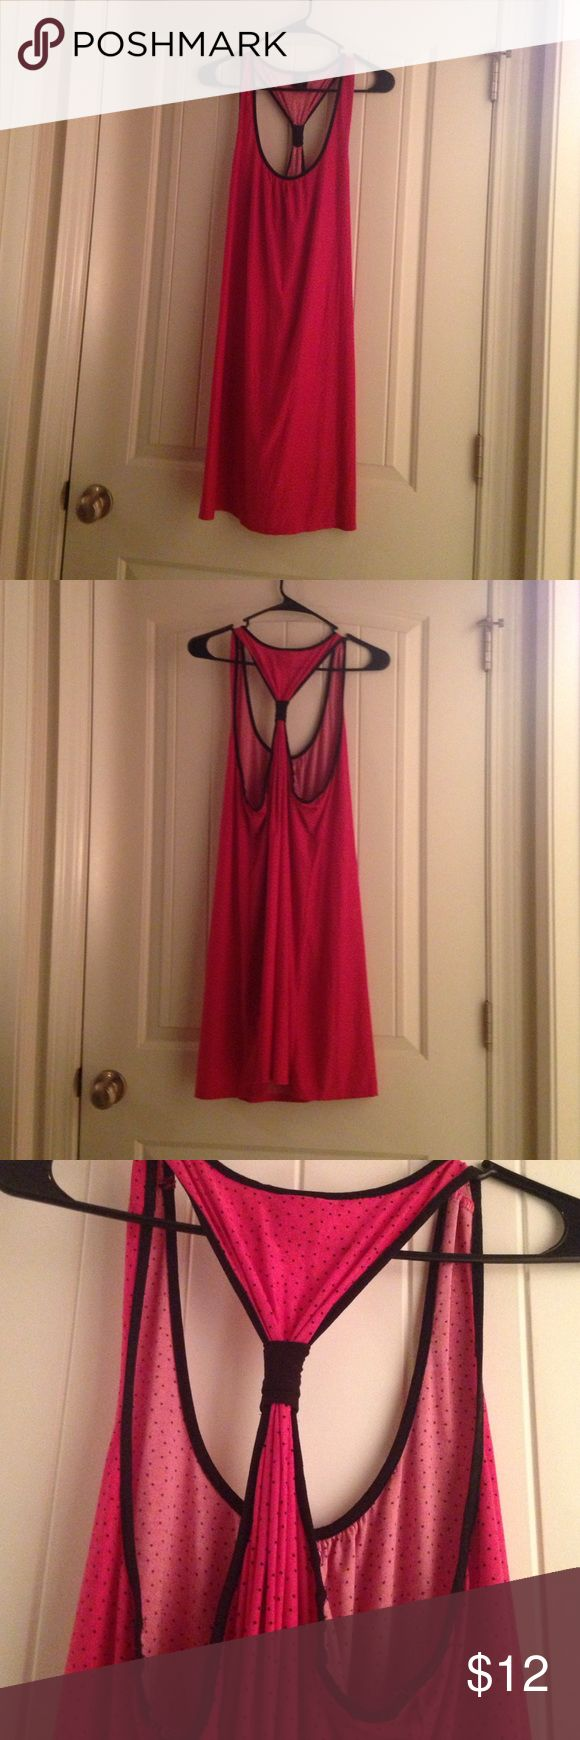 Plus size Razorback gown Apt 9 gown. Hot pink with black dots and trim. Very silky and comfortable. Size XXL Apt. 9 Intimates & Sleepwear Chemises & Slips